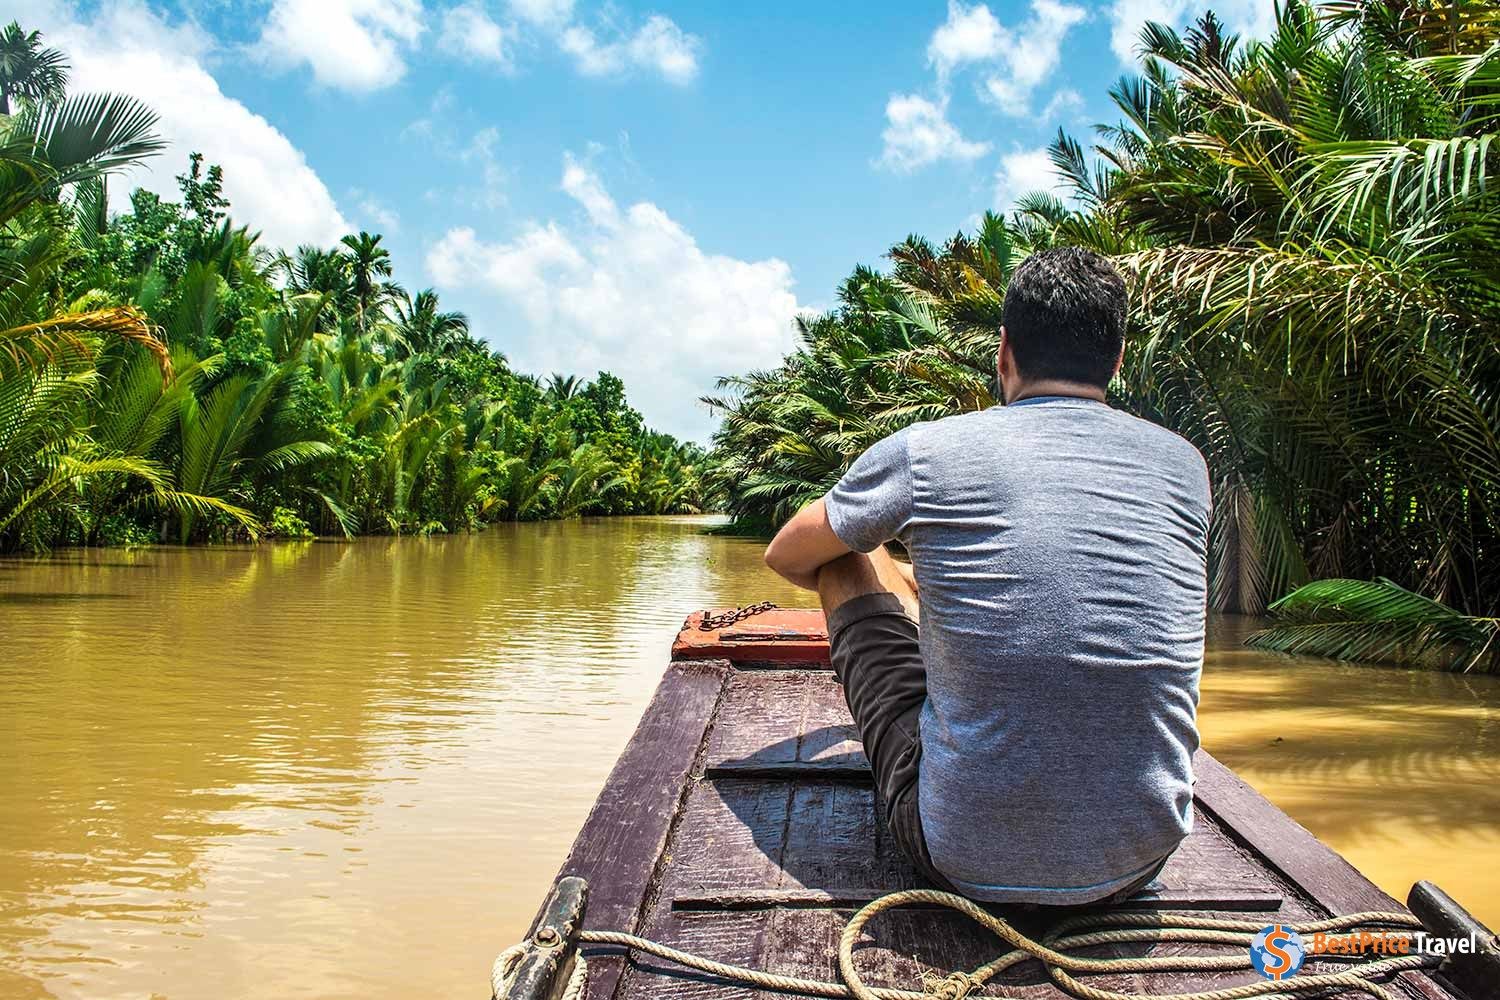 Boats are major means of transport in Mekong Delta - Vietnam Boat Trip